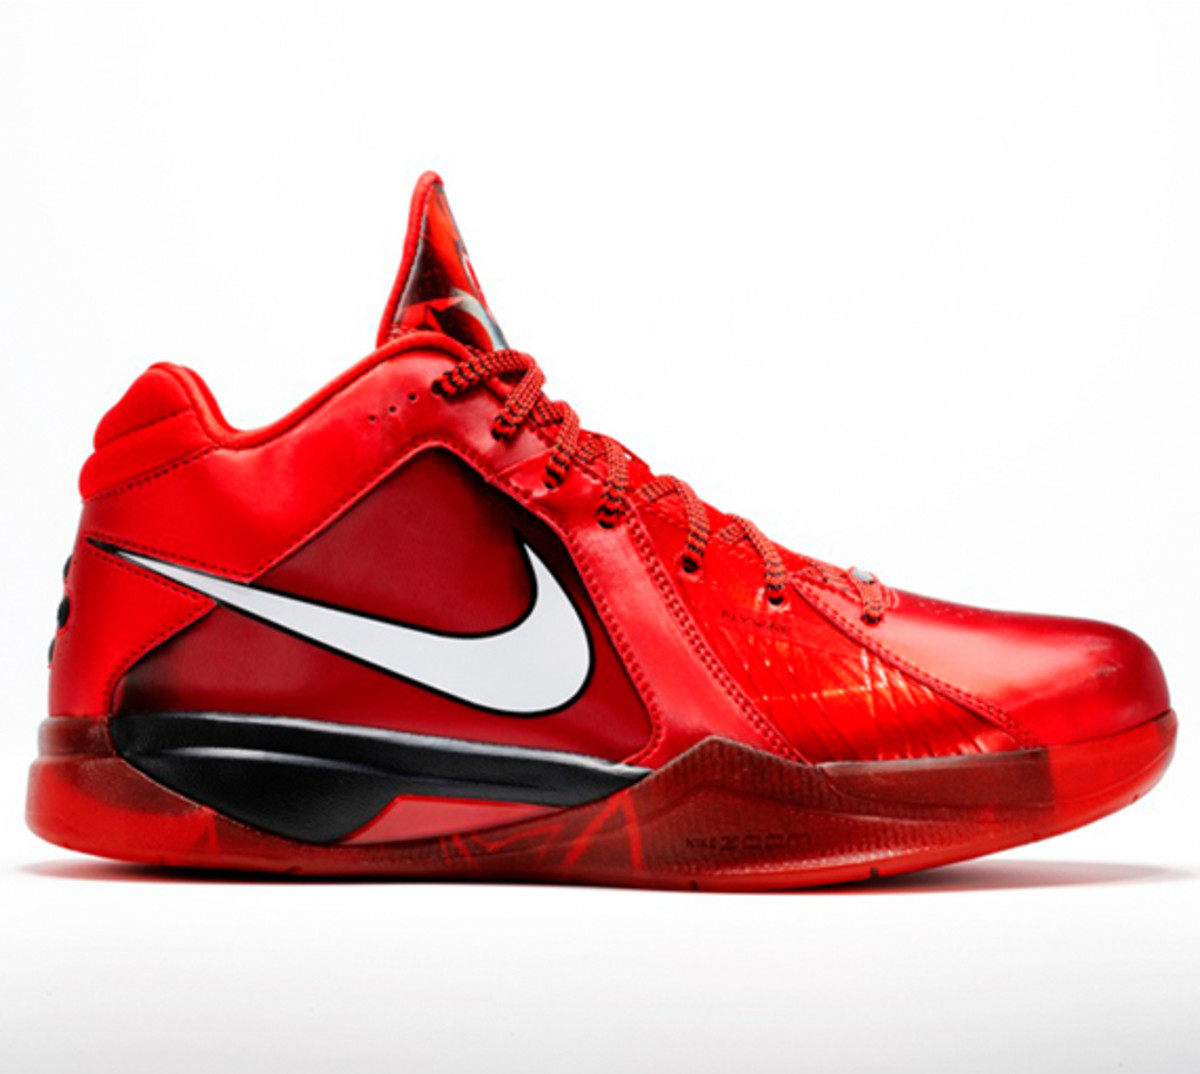 kevin-durant-nike-all-star-zoom-kd-iii-04